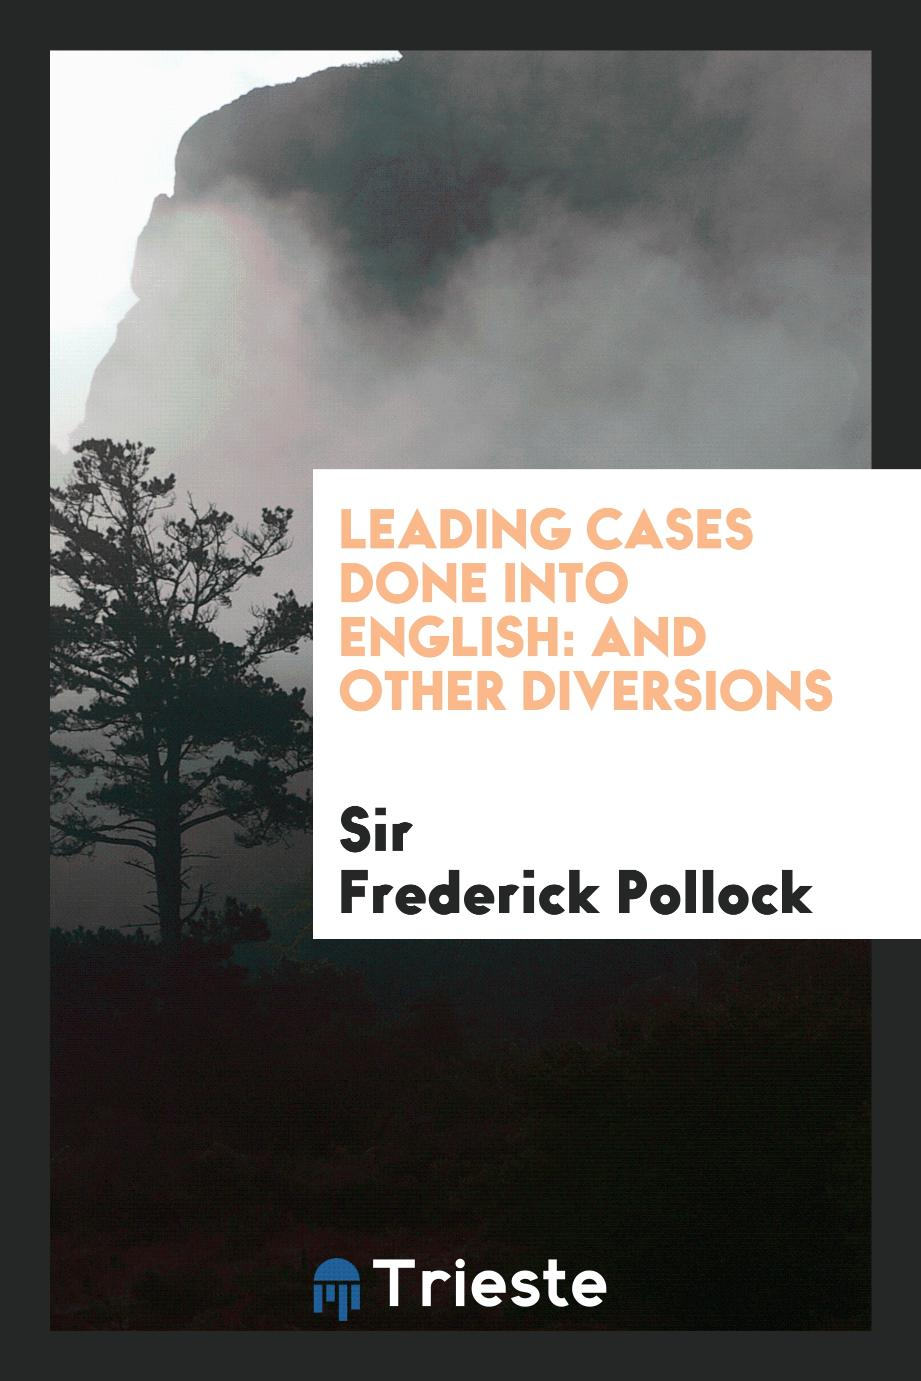 Leading Cases Done Into English: And Other Diversions